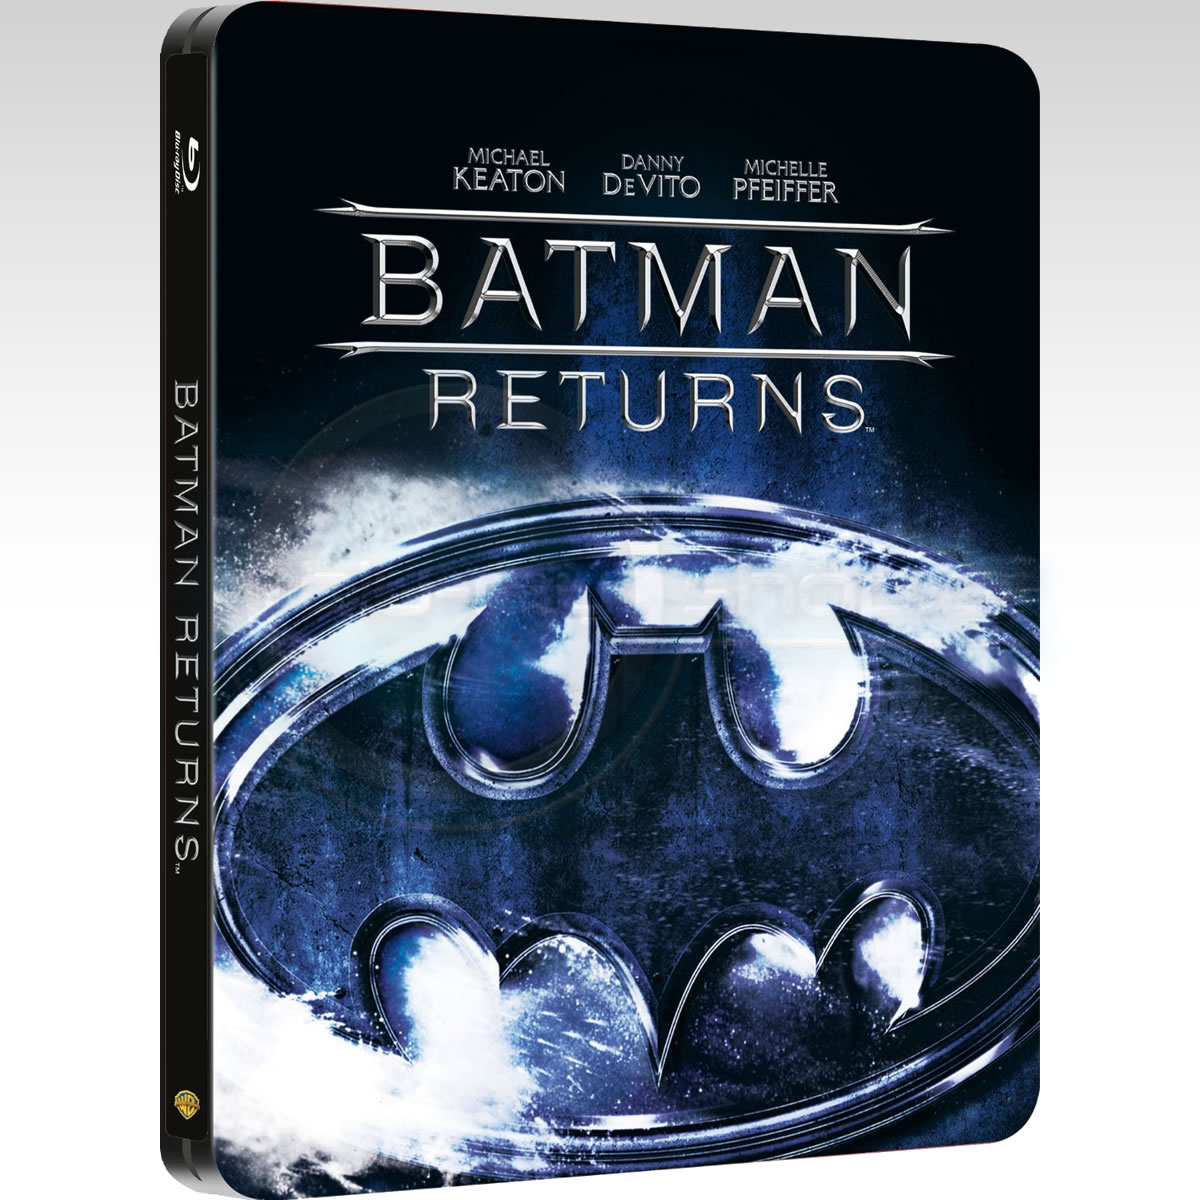 BATMAN RETURNS - � ������� ���������� Limited Collector's Edition Steelbook ������������ [��������� �� ���������� ����������] (BLU-RAY)